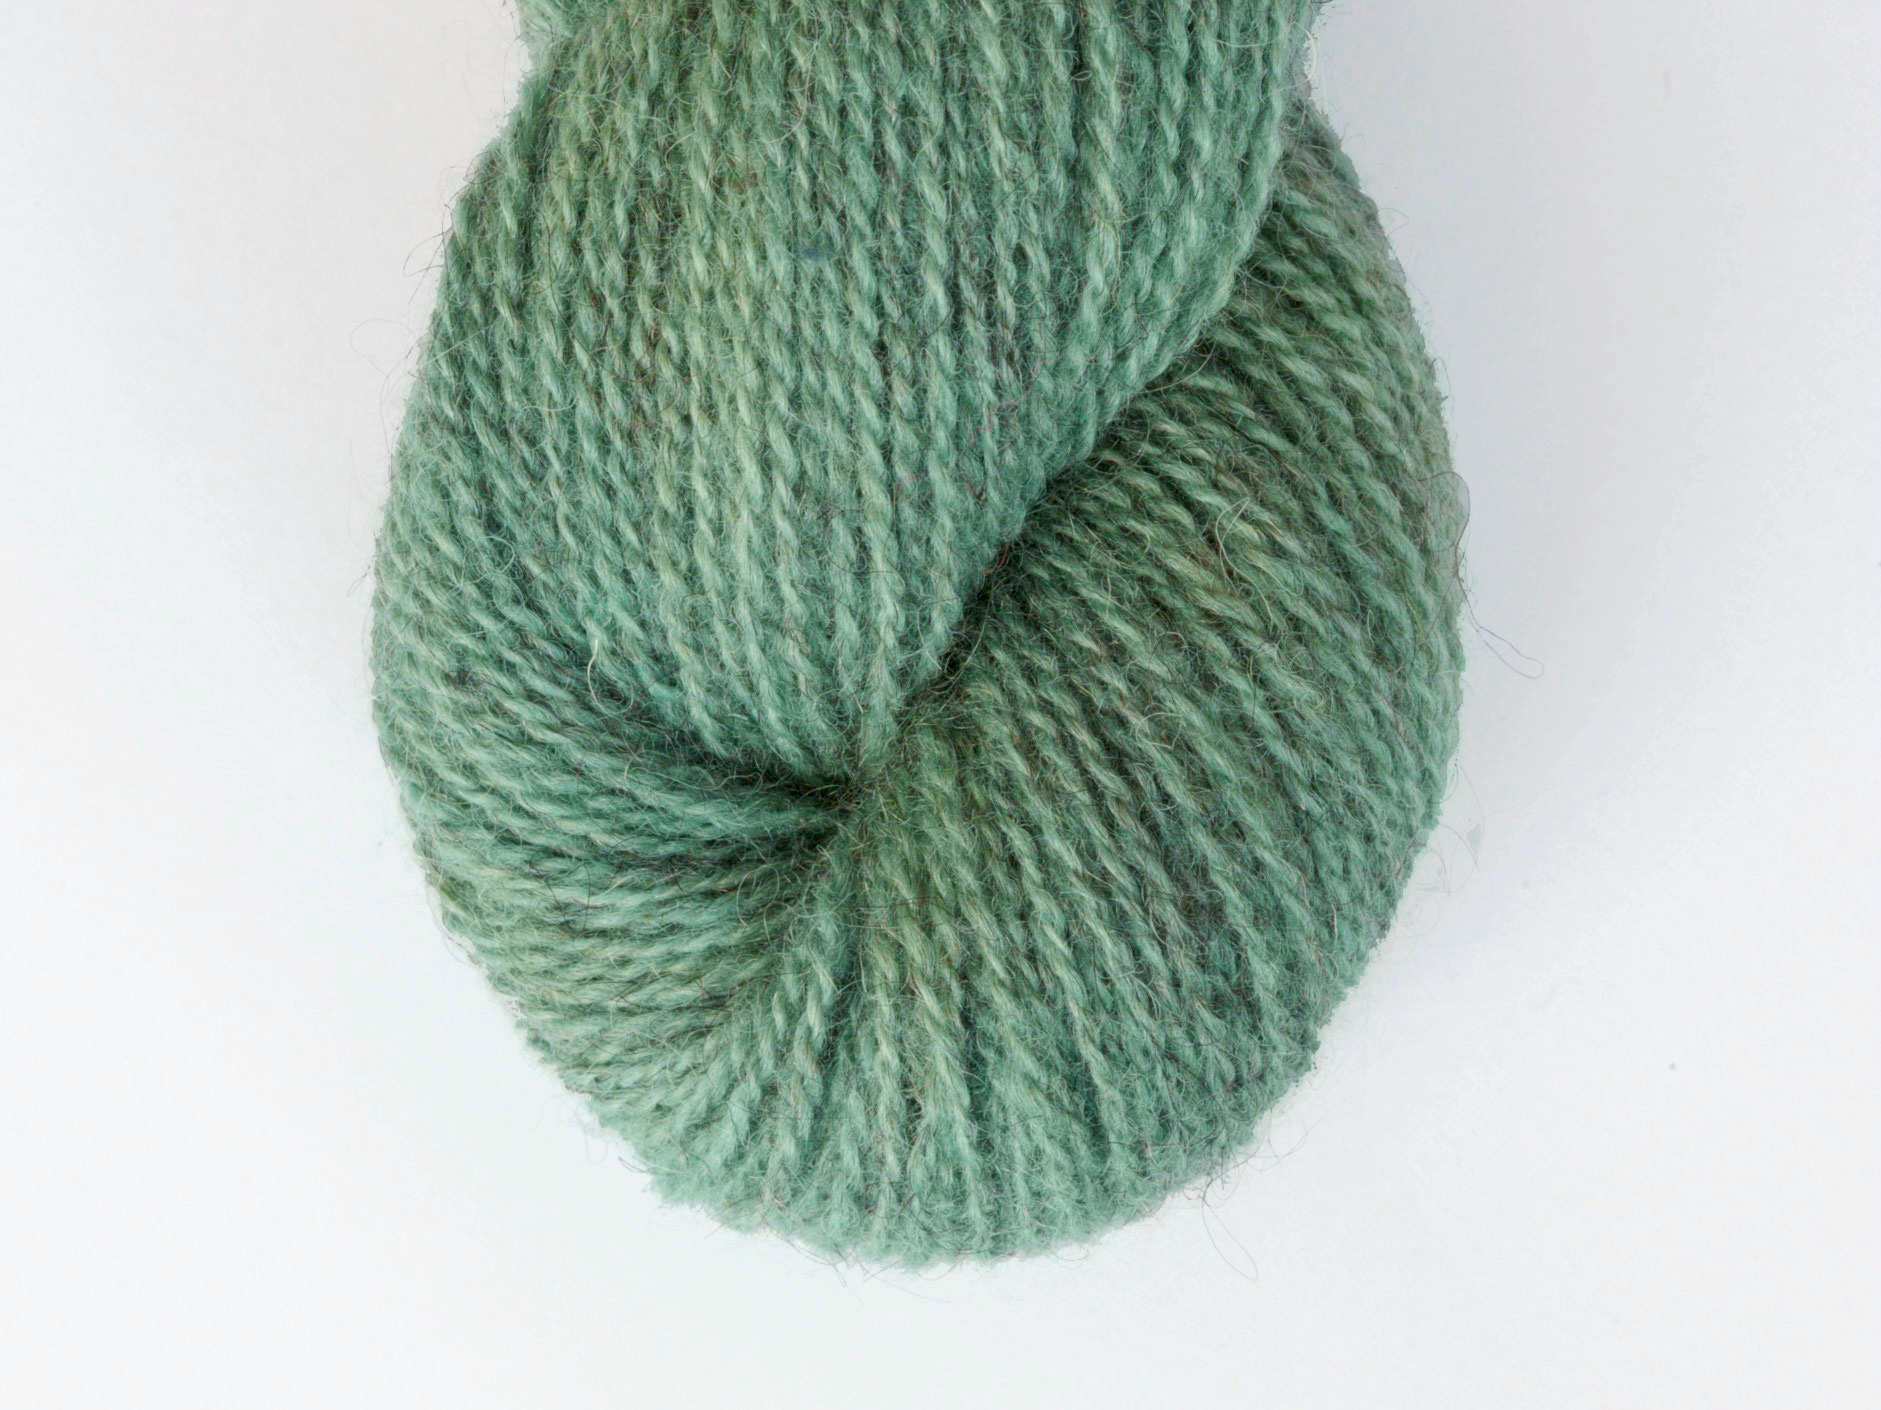 Bohus Stickning garn yarn BS GÄ green lambswool